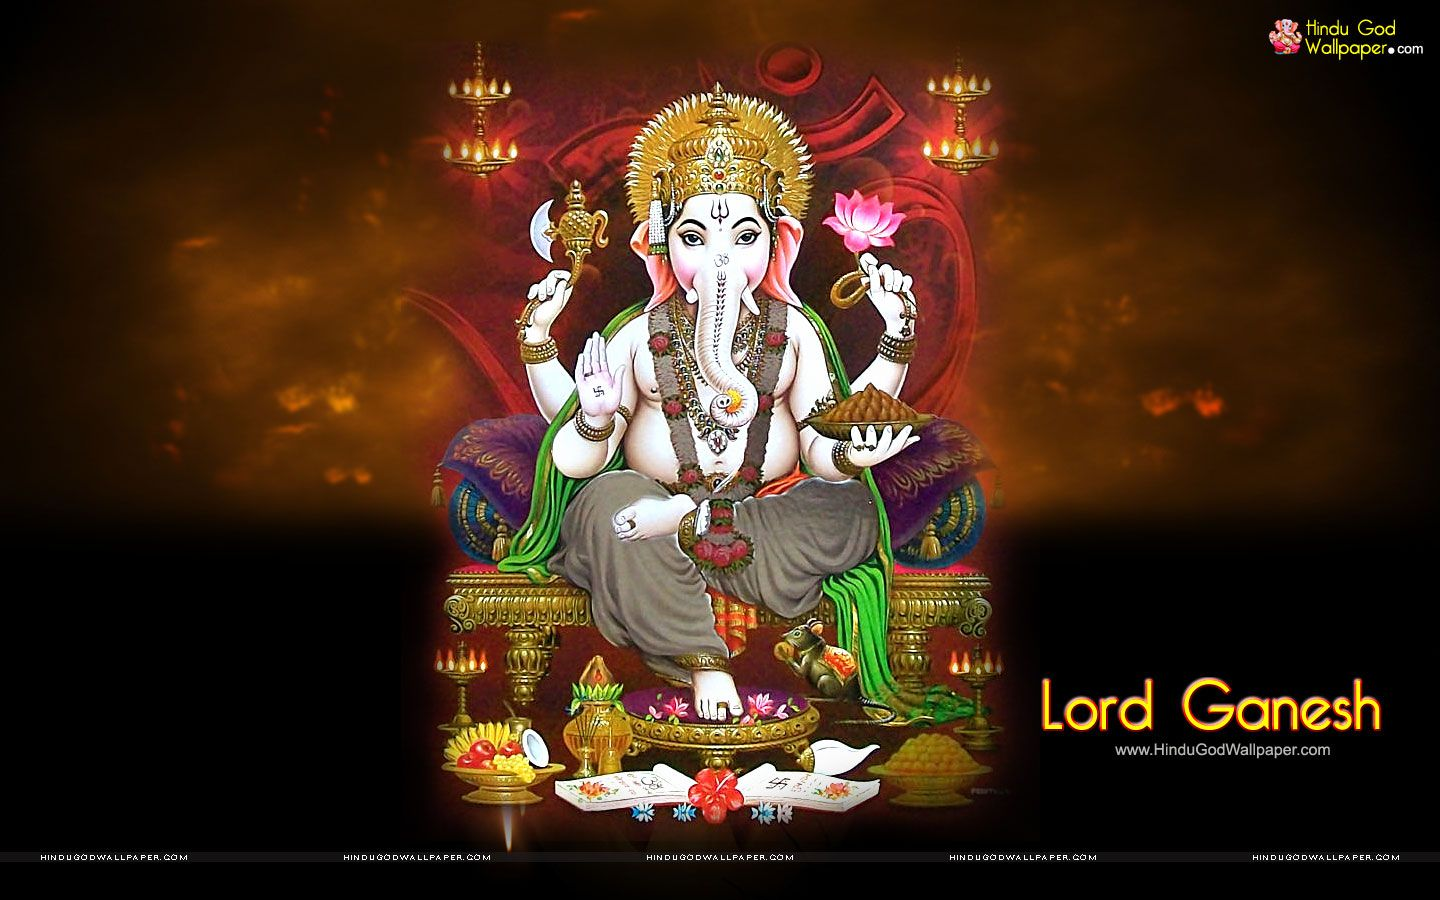 lord ganesh wallpapers hd high resolution download | ganpati bappa